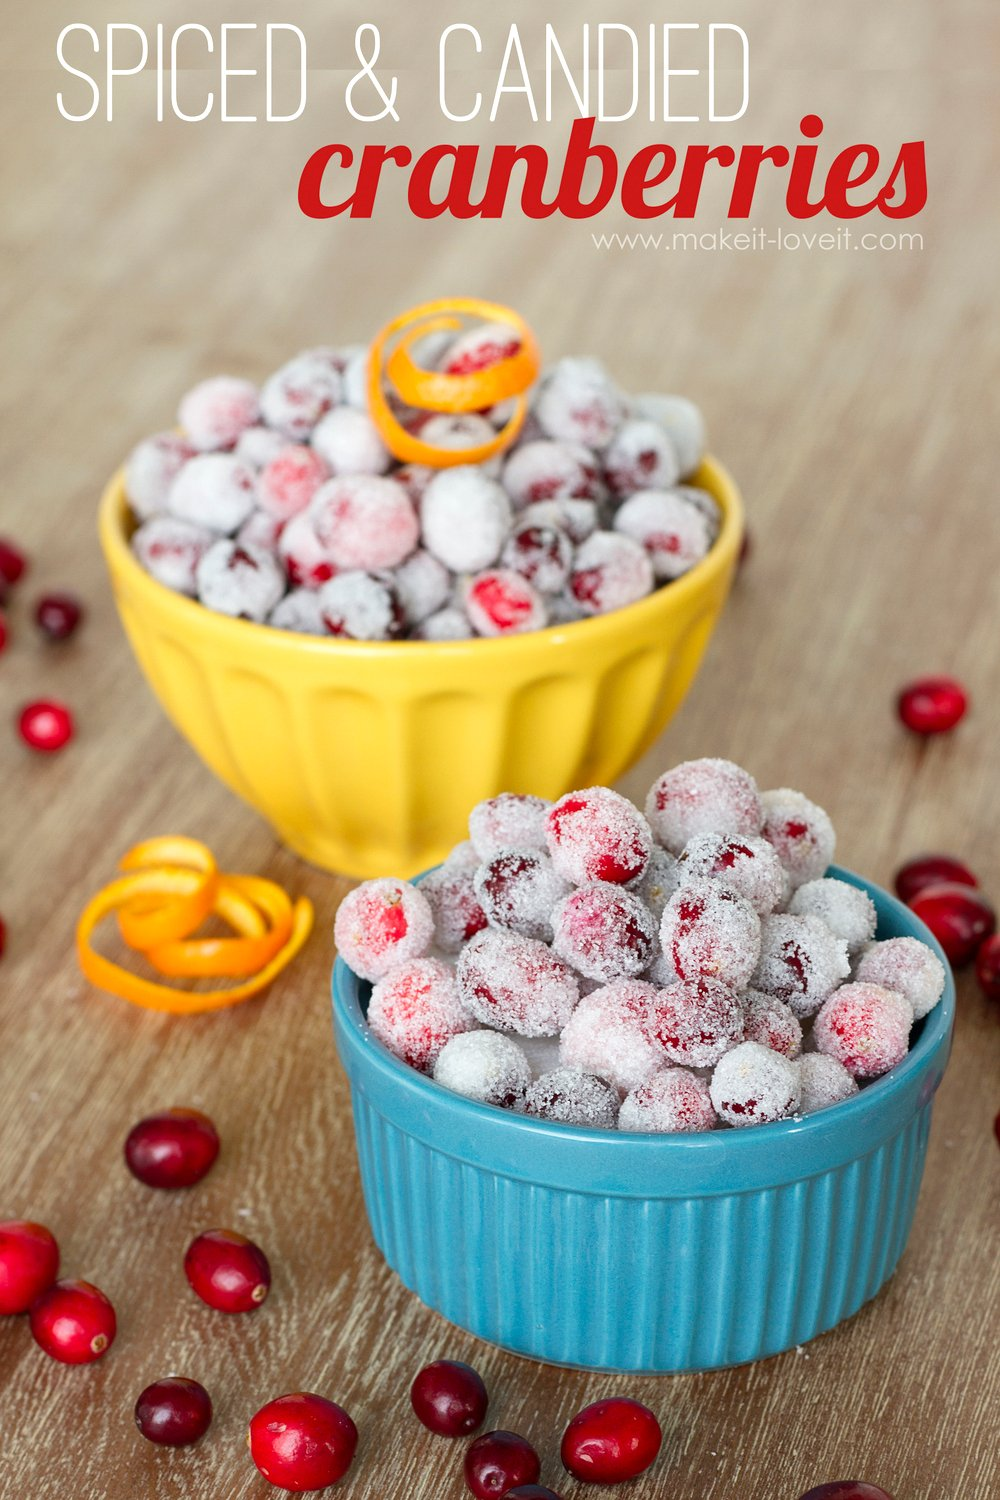 Spiced & Candied FRESH Cranberries….a yummy Fall snack!